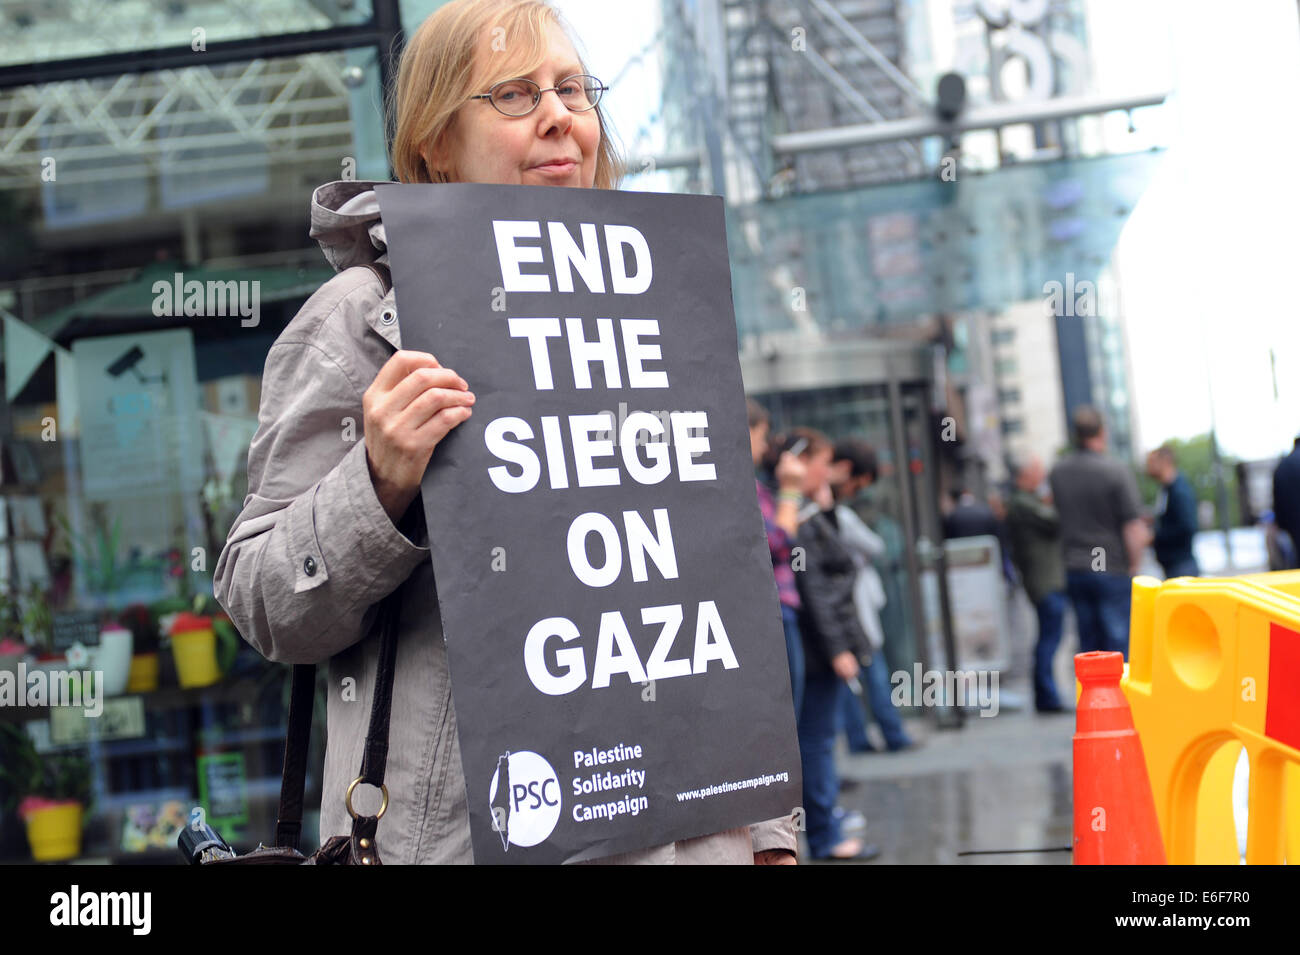 Liverpool, UK. Friday 22nd August 2014. A quiet and solemn commemoration of those killed in Gaza in recent weeks - Stock Image